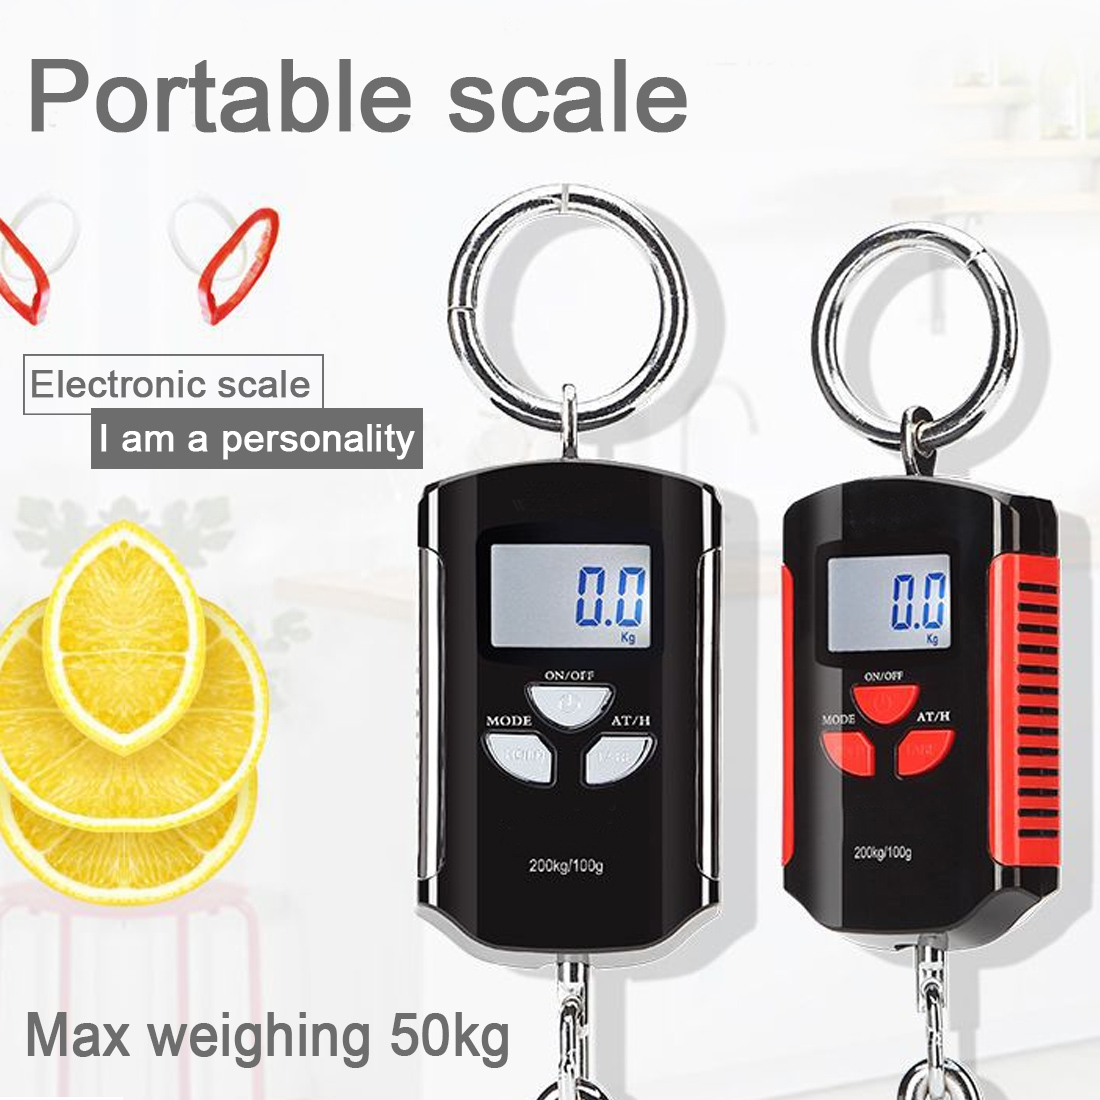 Mini Portable Hanging Crane <font><b>Scale</b></font> <font><b>200kg</b></font>/100g <font><b>Digital</b></font> Heavy Duty <font><b>scale</b></font> Industrial Hook <font><b>Scale</b></font> Electronic Weighing Balance image